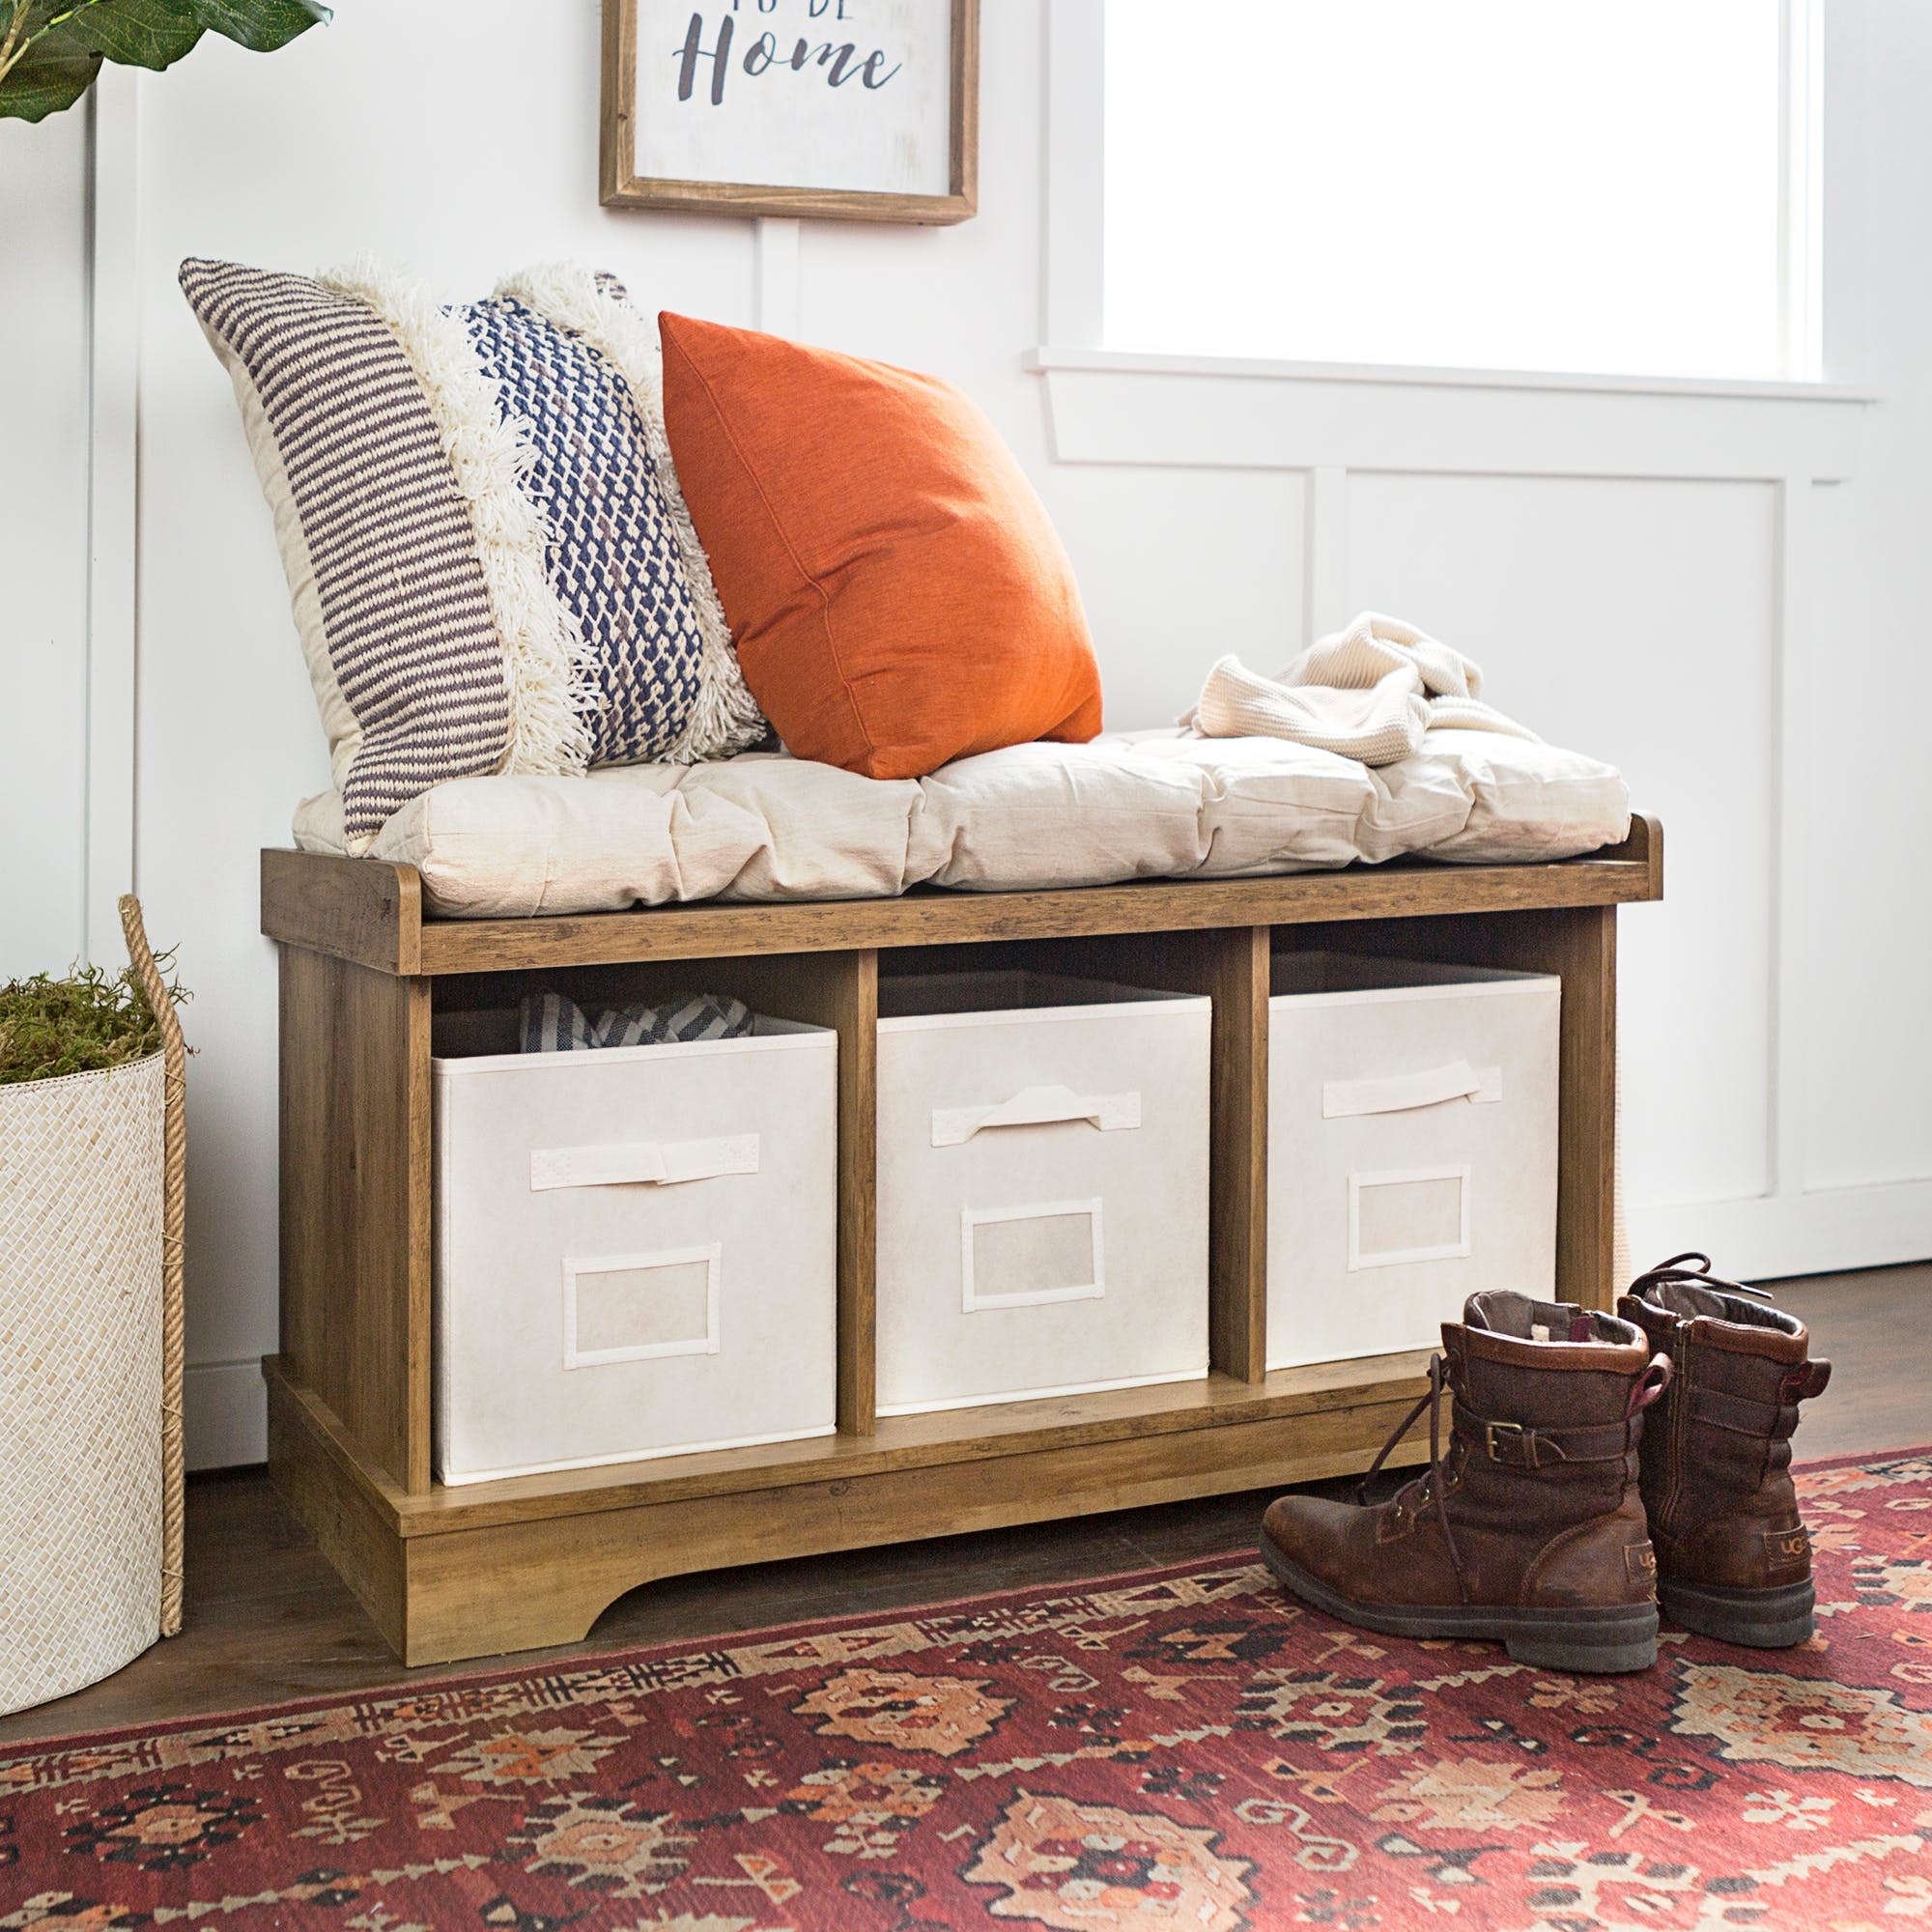 Ft Myers Living Room 42 Transitional Modern Farmhouse Wood Entryway Storage Bench With Cushion And Totes Rustic Oak Wedb42stcro Walter E Smithe